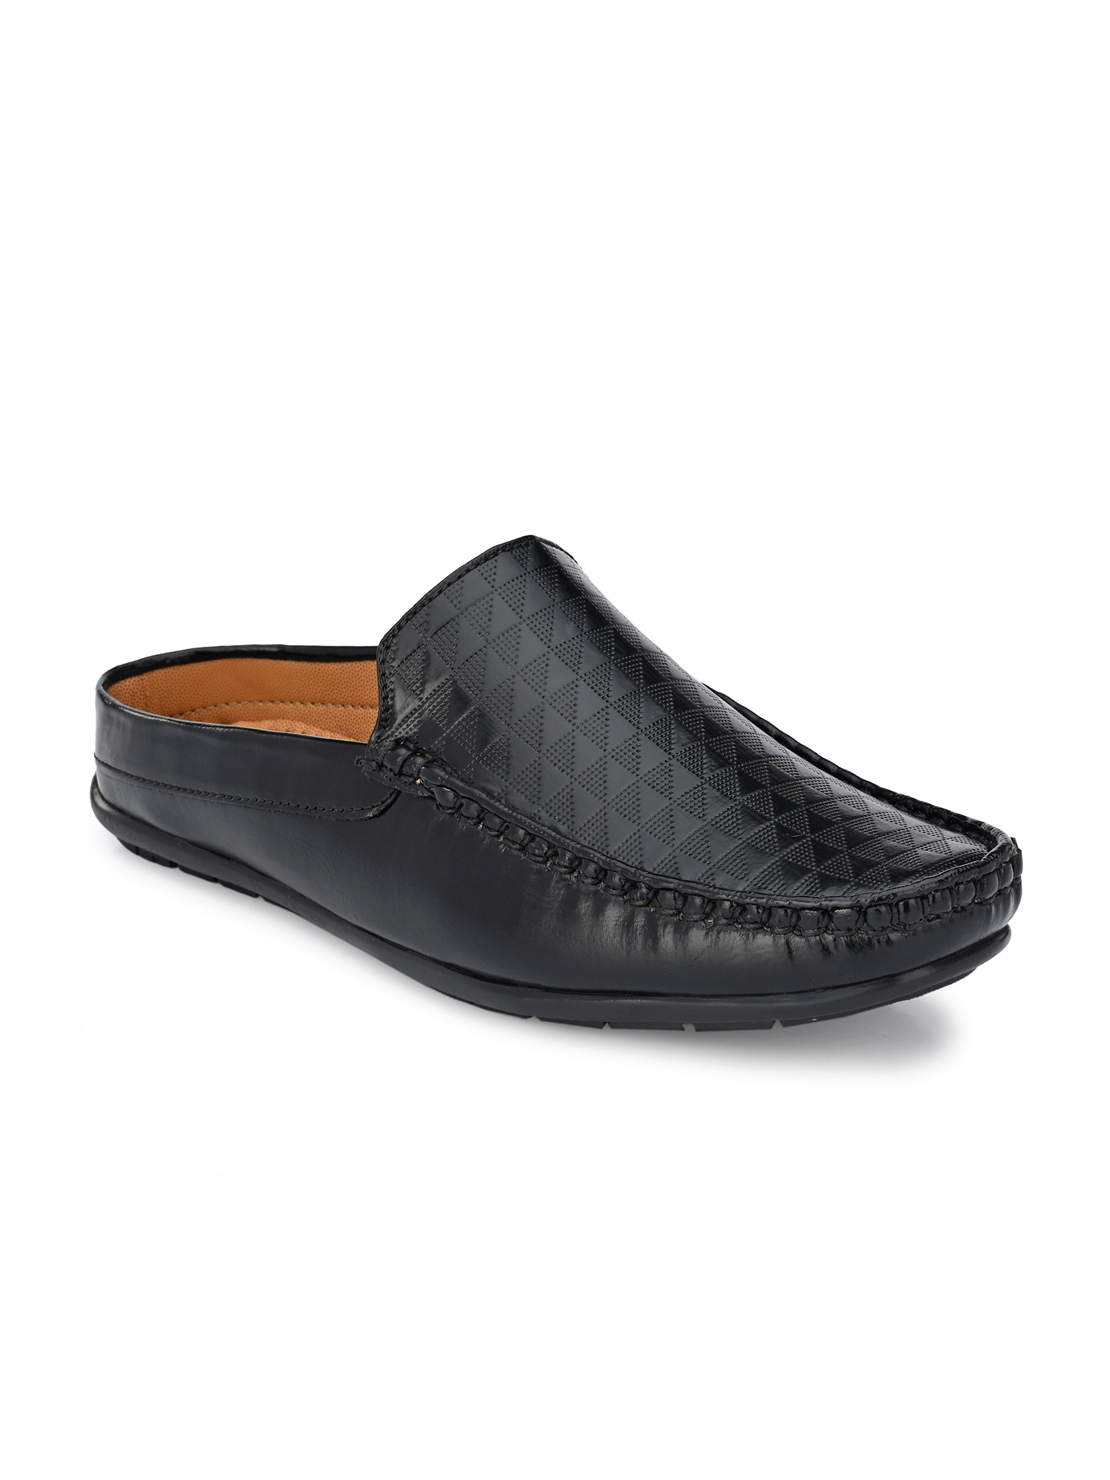 Guava | Guava Men Casual Open Back textured Loafers Mules Shoe - Black